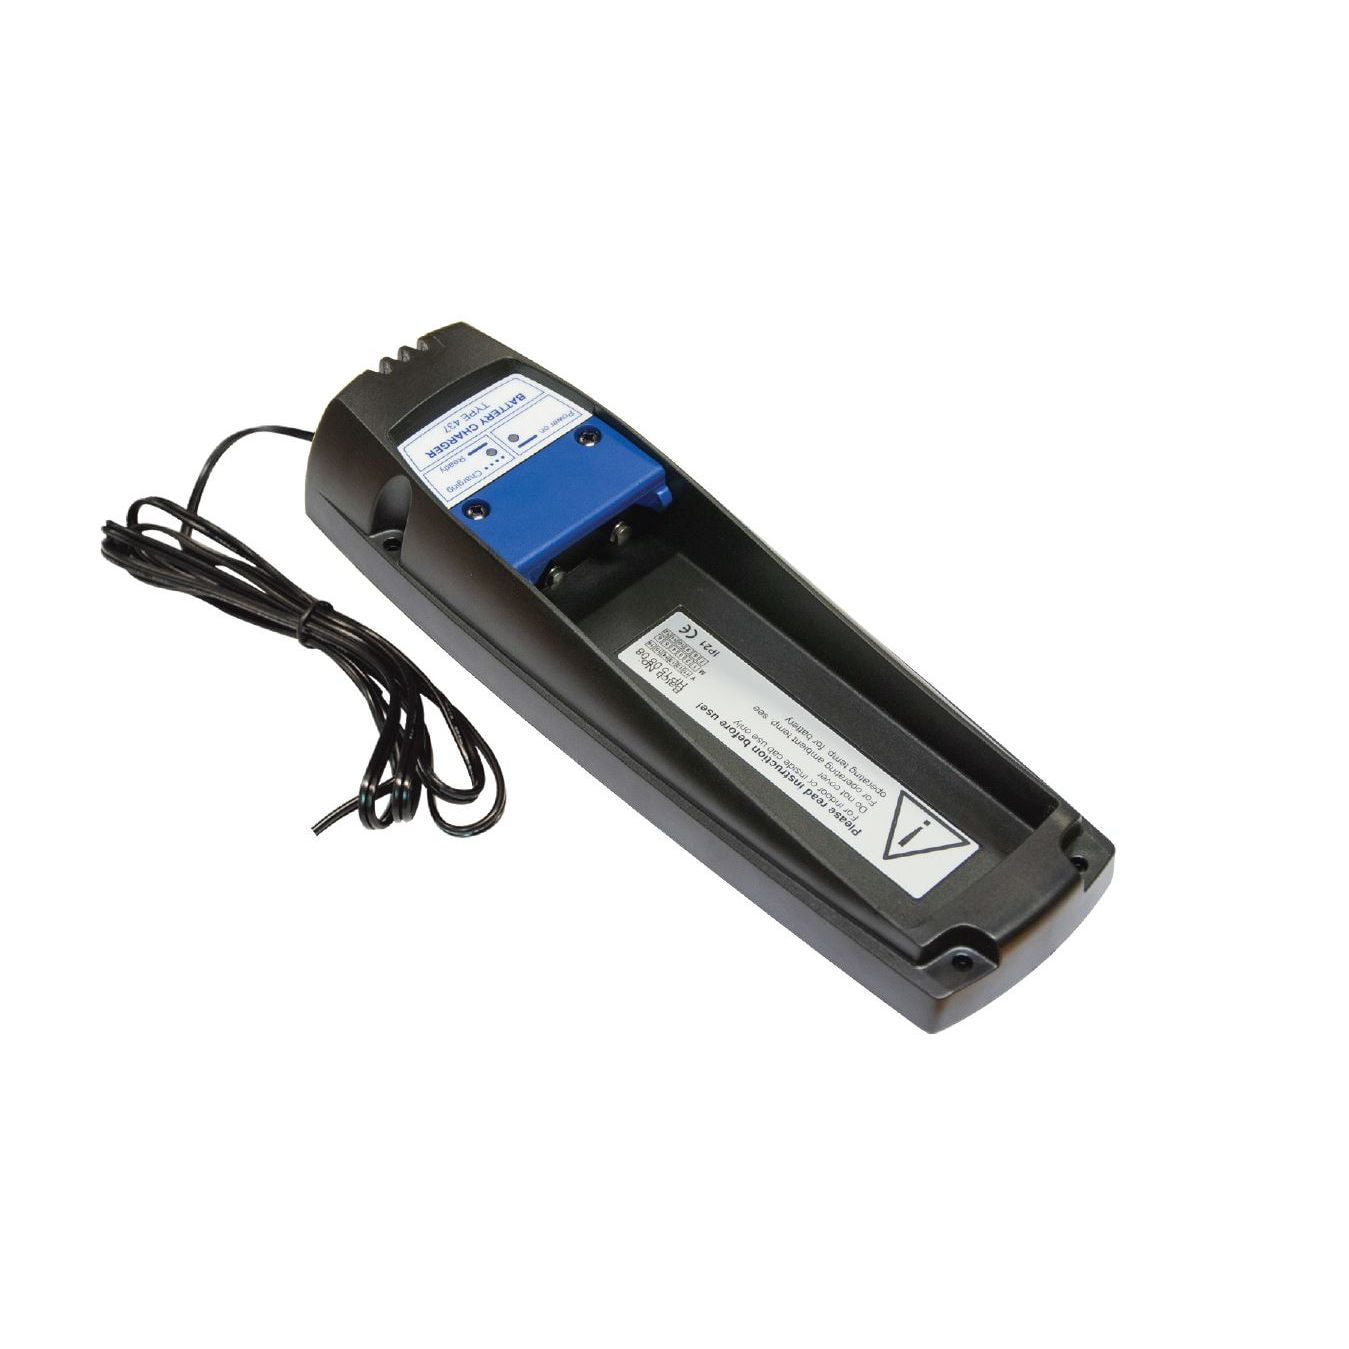 Scanreco Battery Charger 437